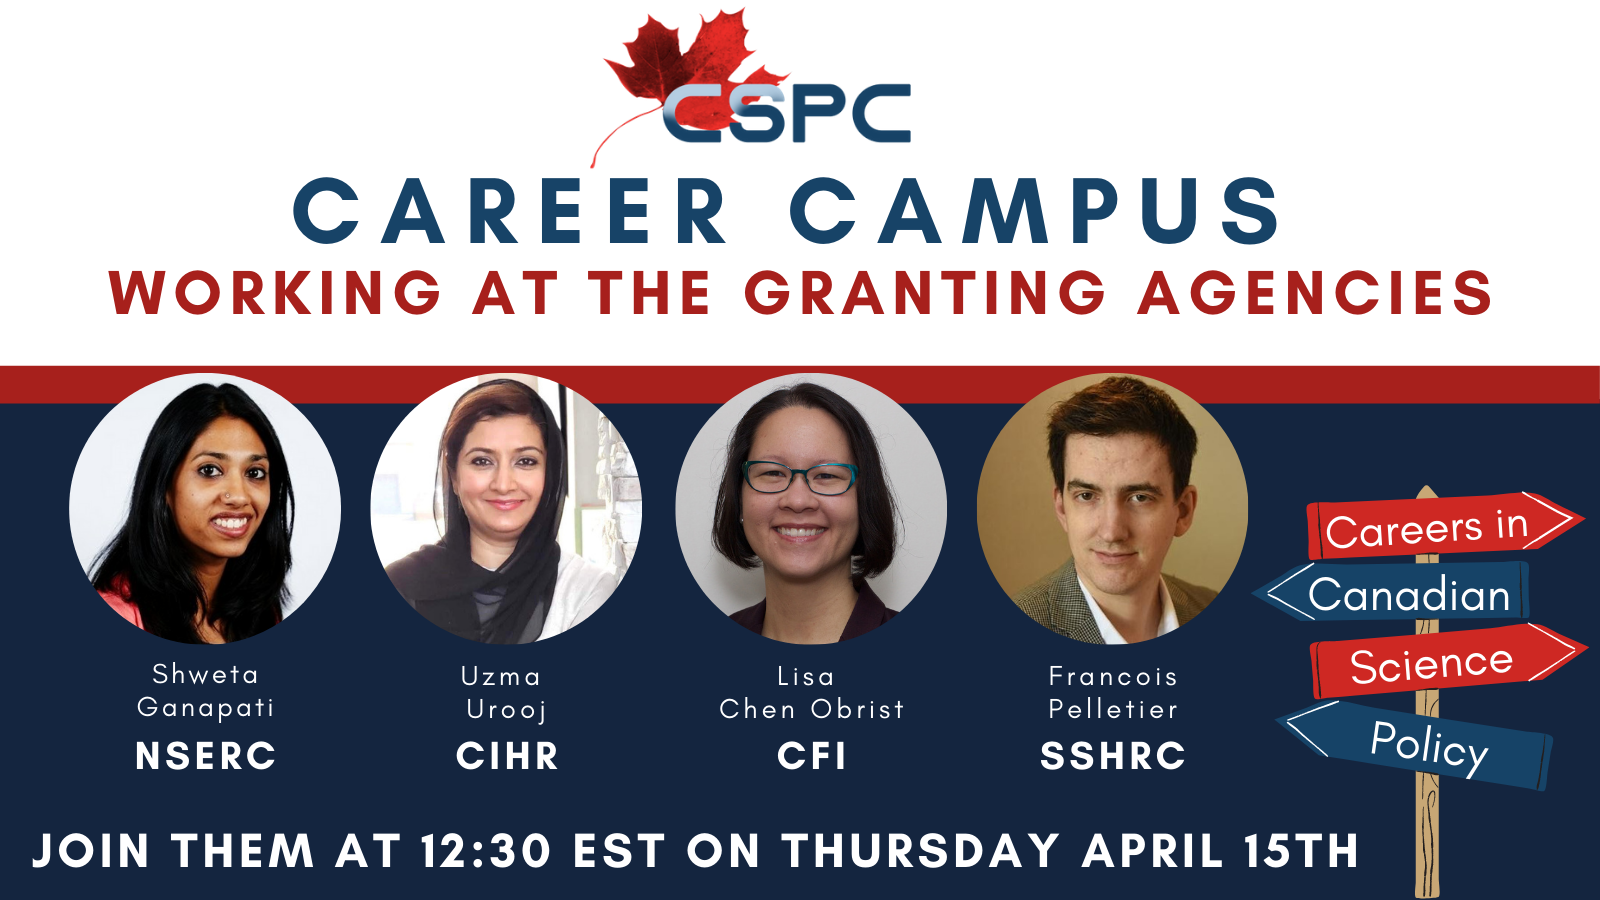 CSPC Career Campus Working at the Granting Agencies featuring Shweta Ganapati(NSERC), Uzma Urouj (CIHR) Lisa Chen Obrist (CFI) and Francois Pelletier (SSHRC). Join them at 12:30 on Thursday April 15th